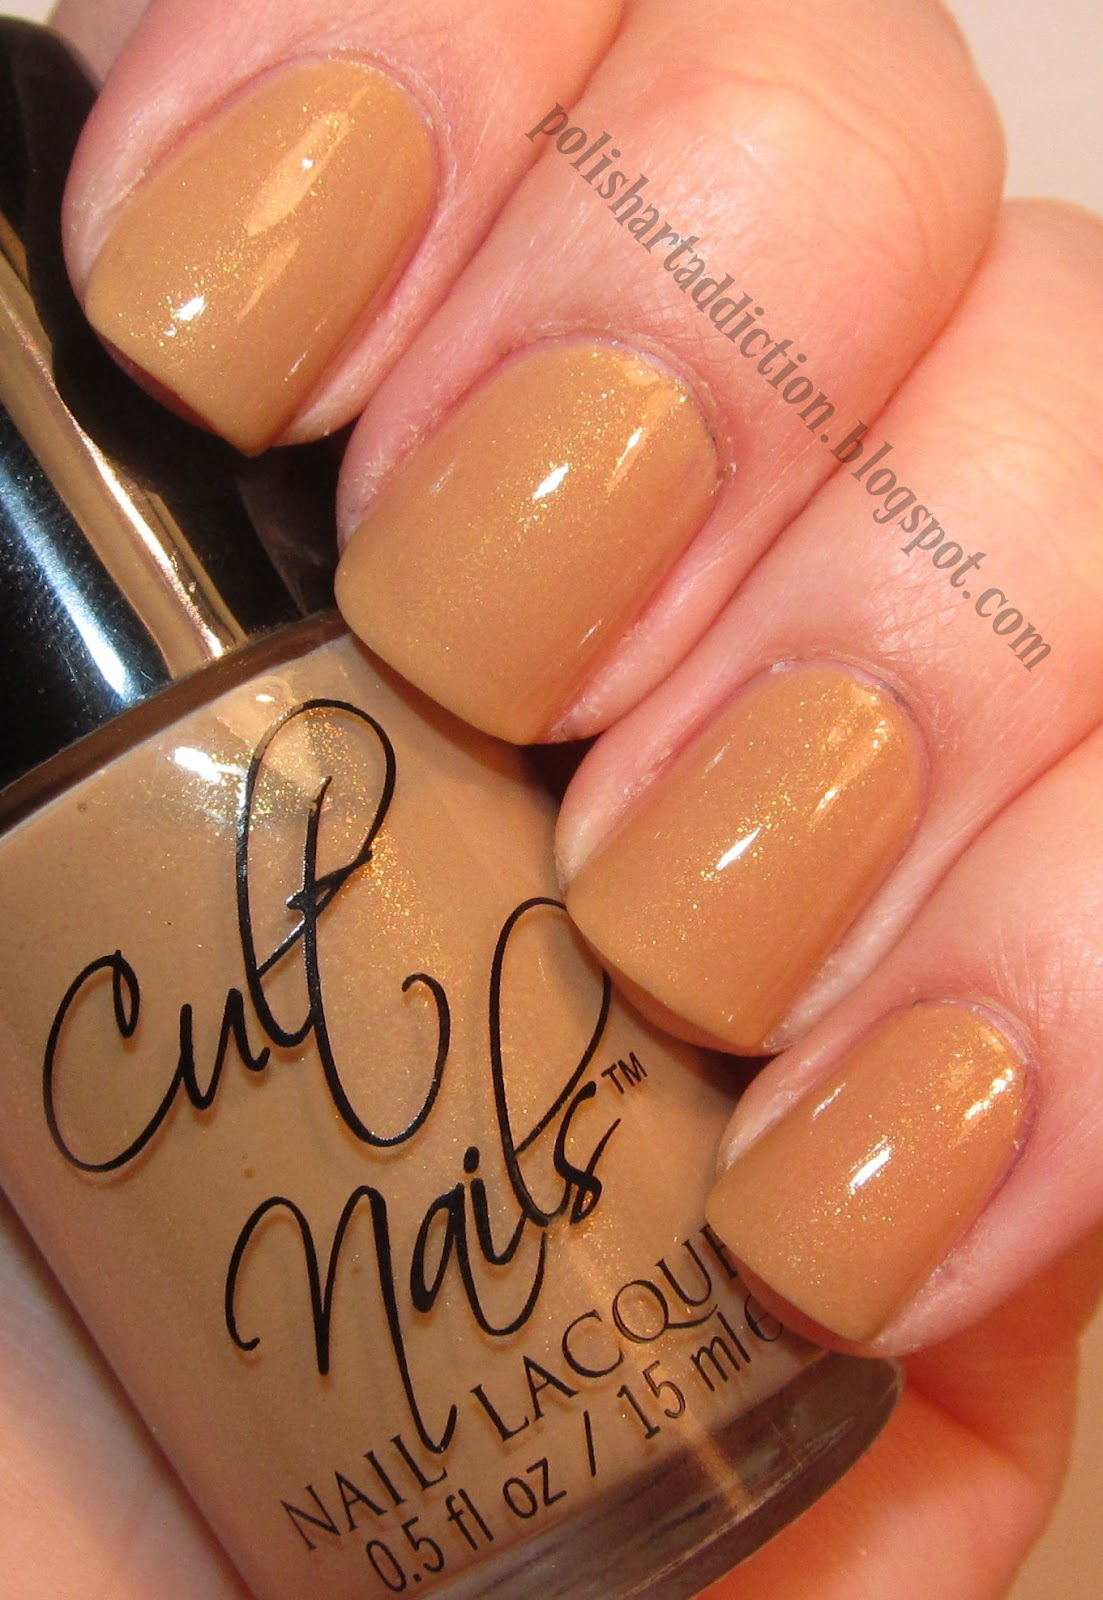 Cult Nails - Baker